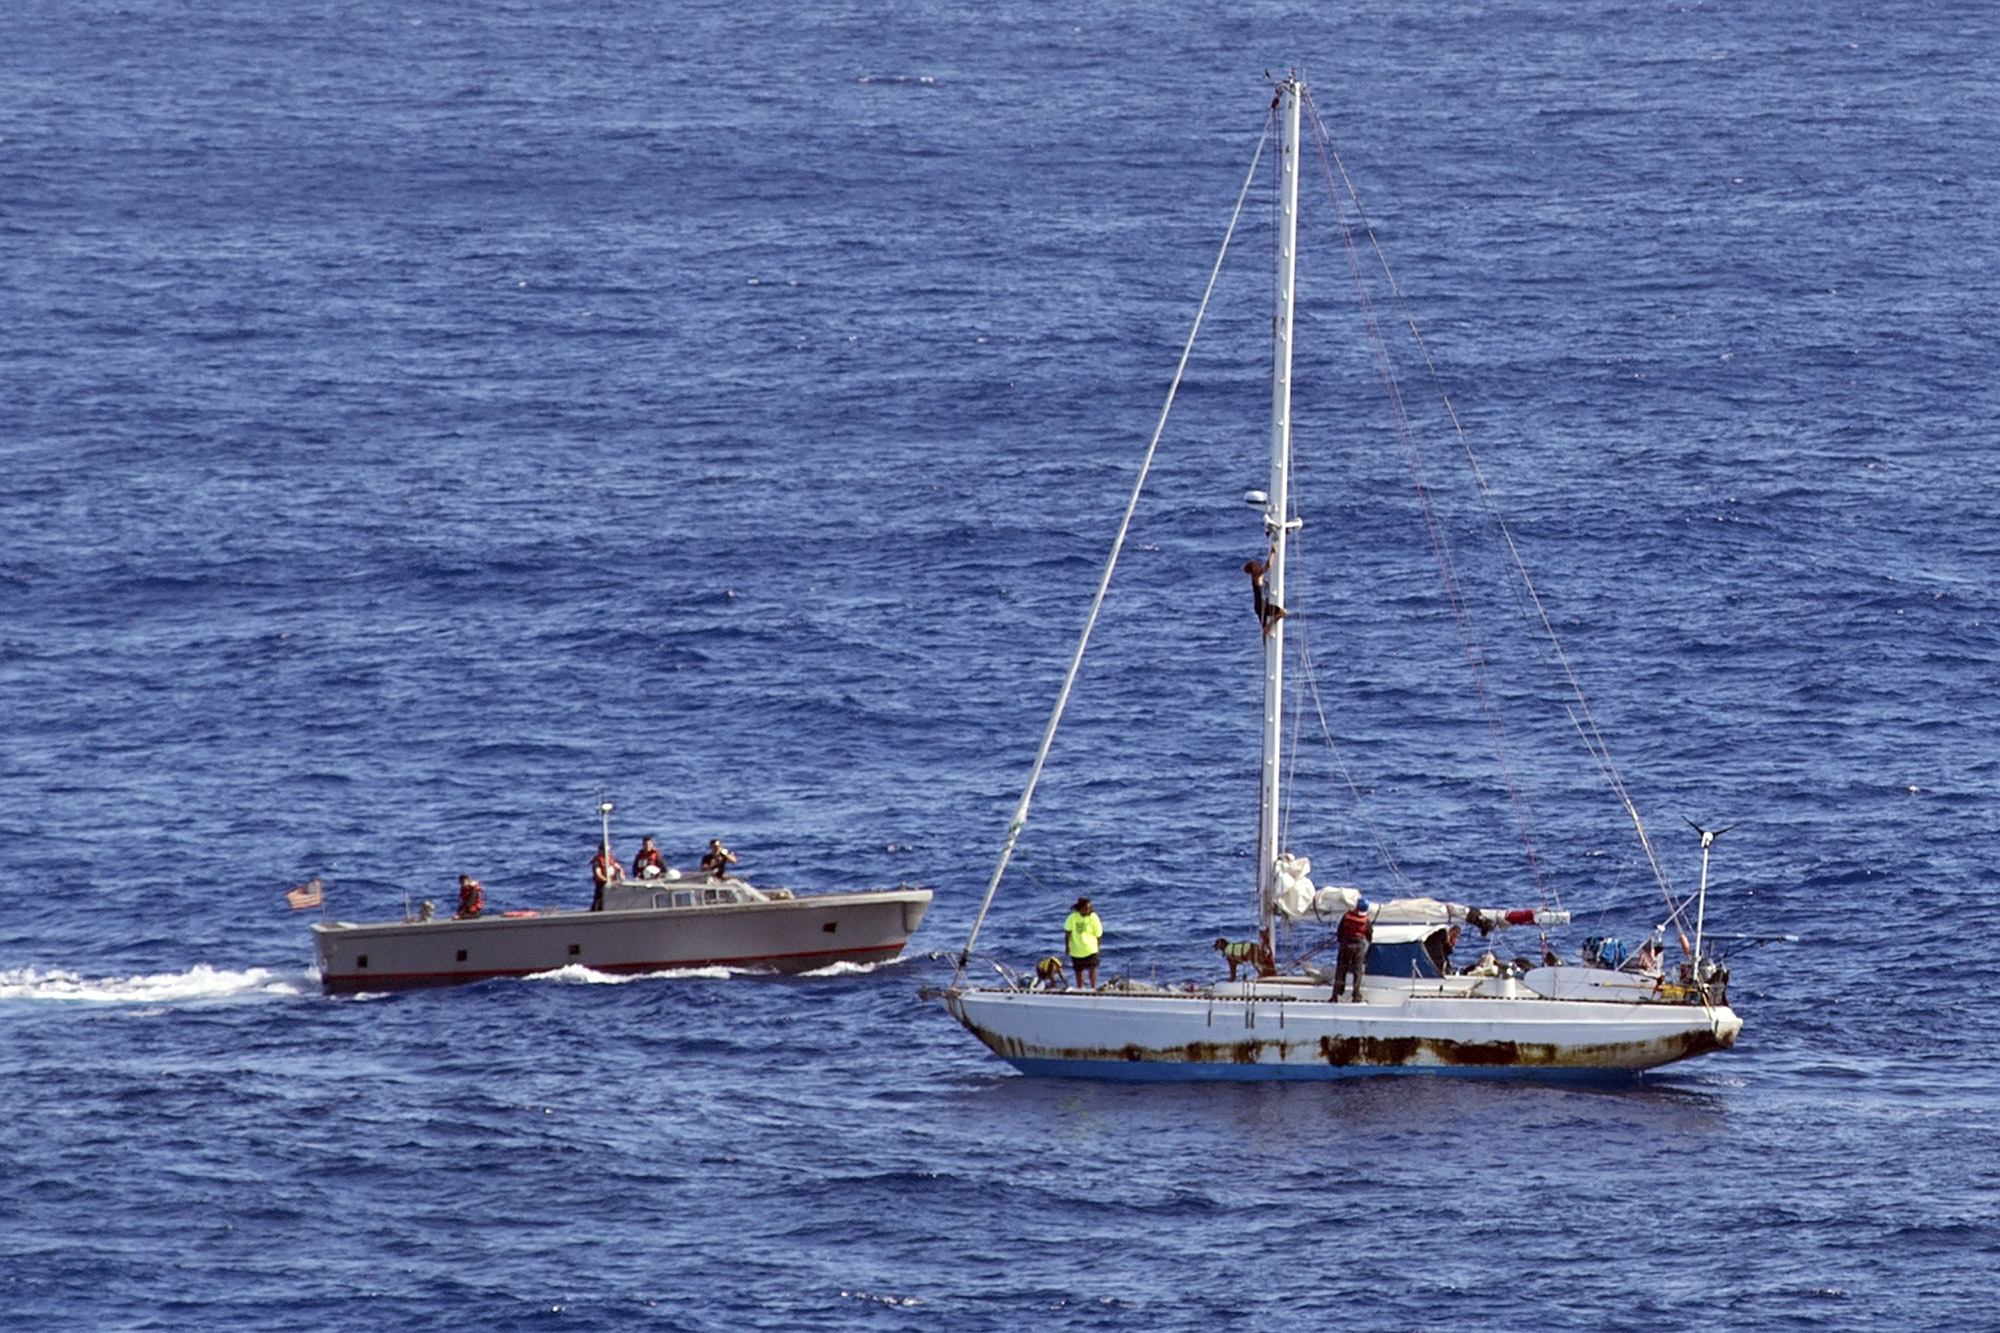 Hawaii Mariners Rescued - 25 Oct 2017